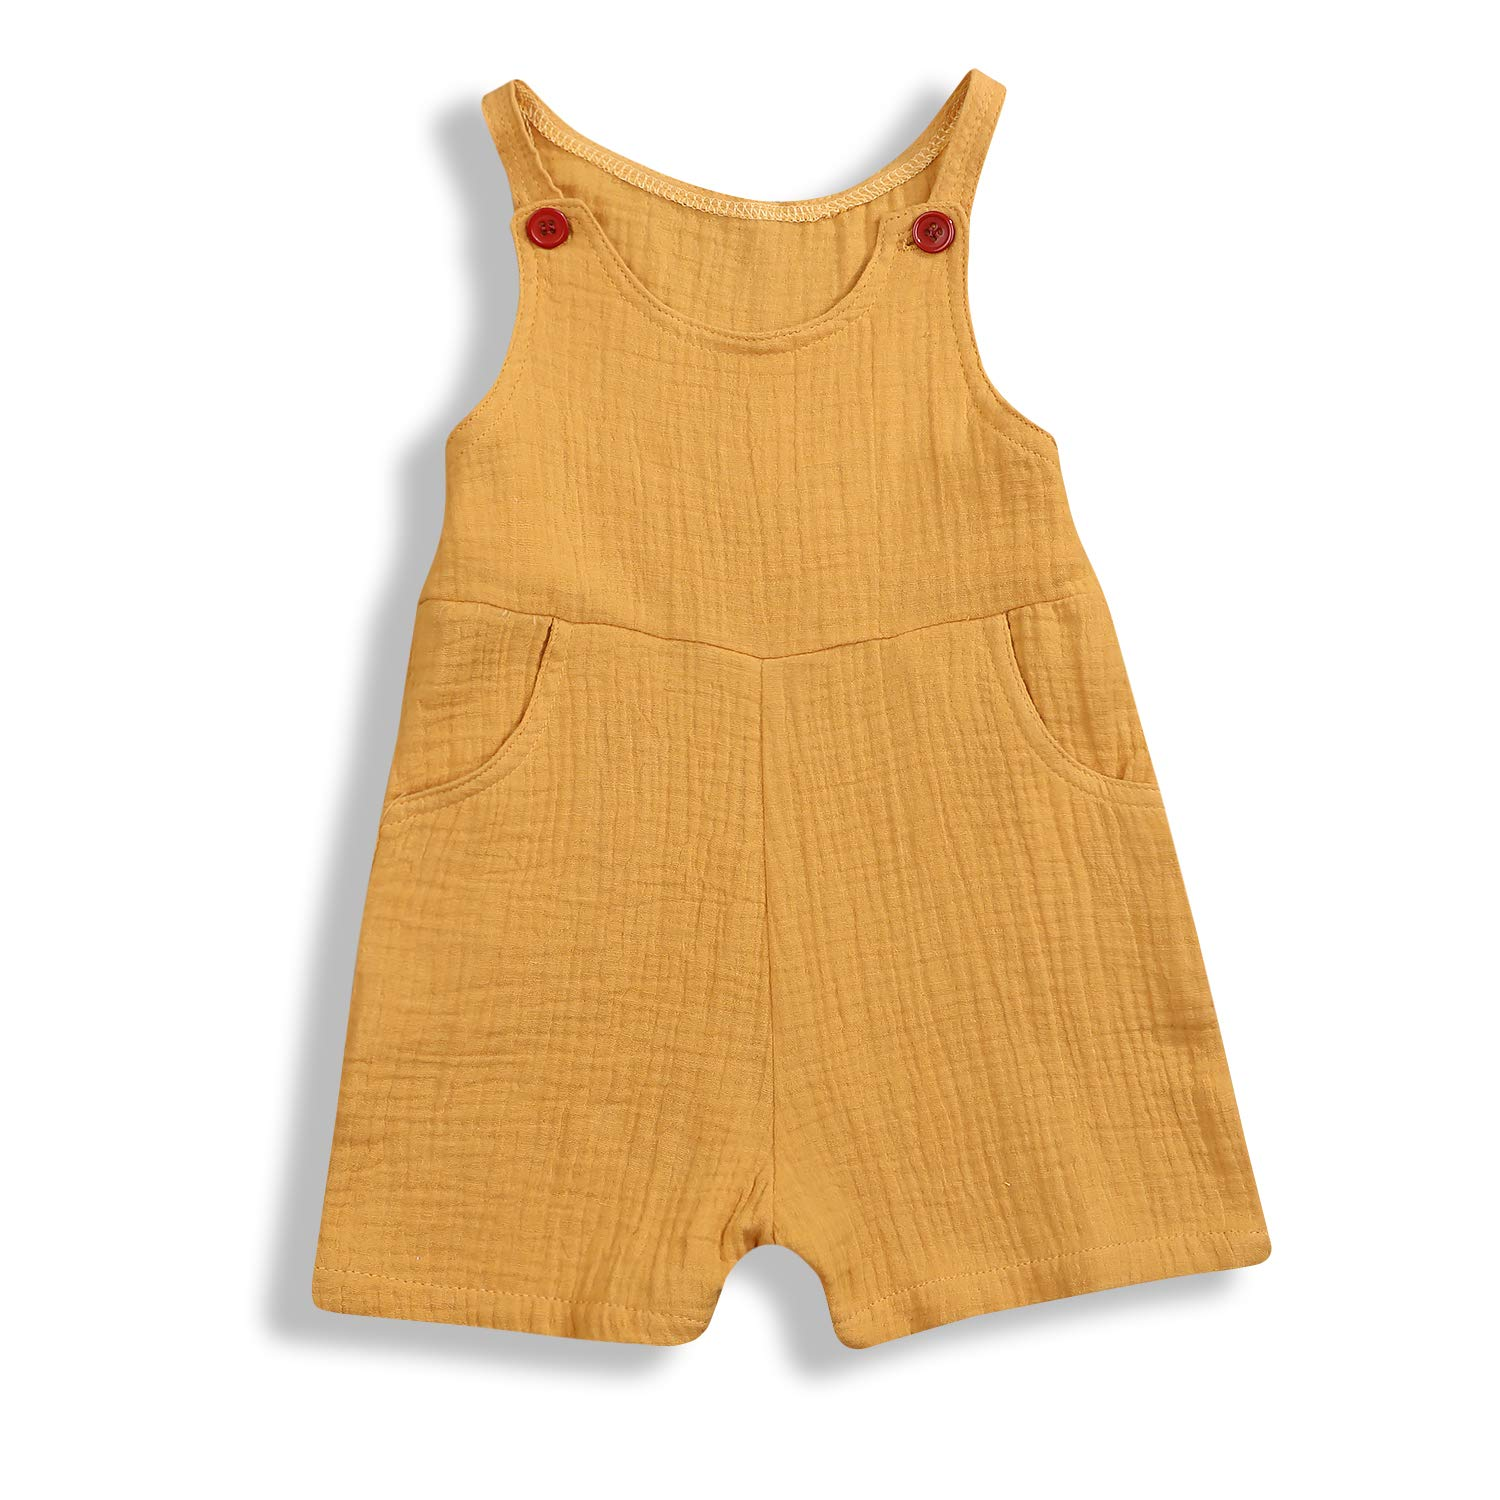 Toddler Baby Boys Girls Romper Pure Color Cotton Linen Sleeveless Overalls Jumpsuit Summer Outfits Clothes 0-2T Yellow